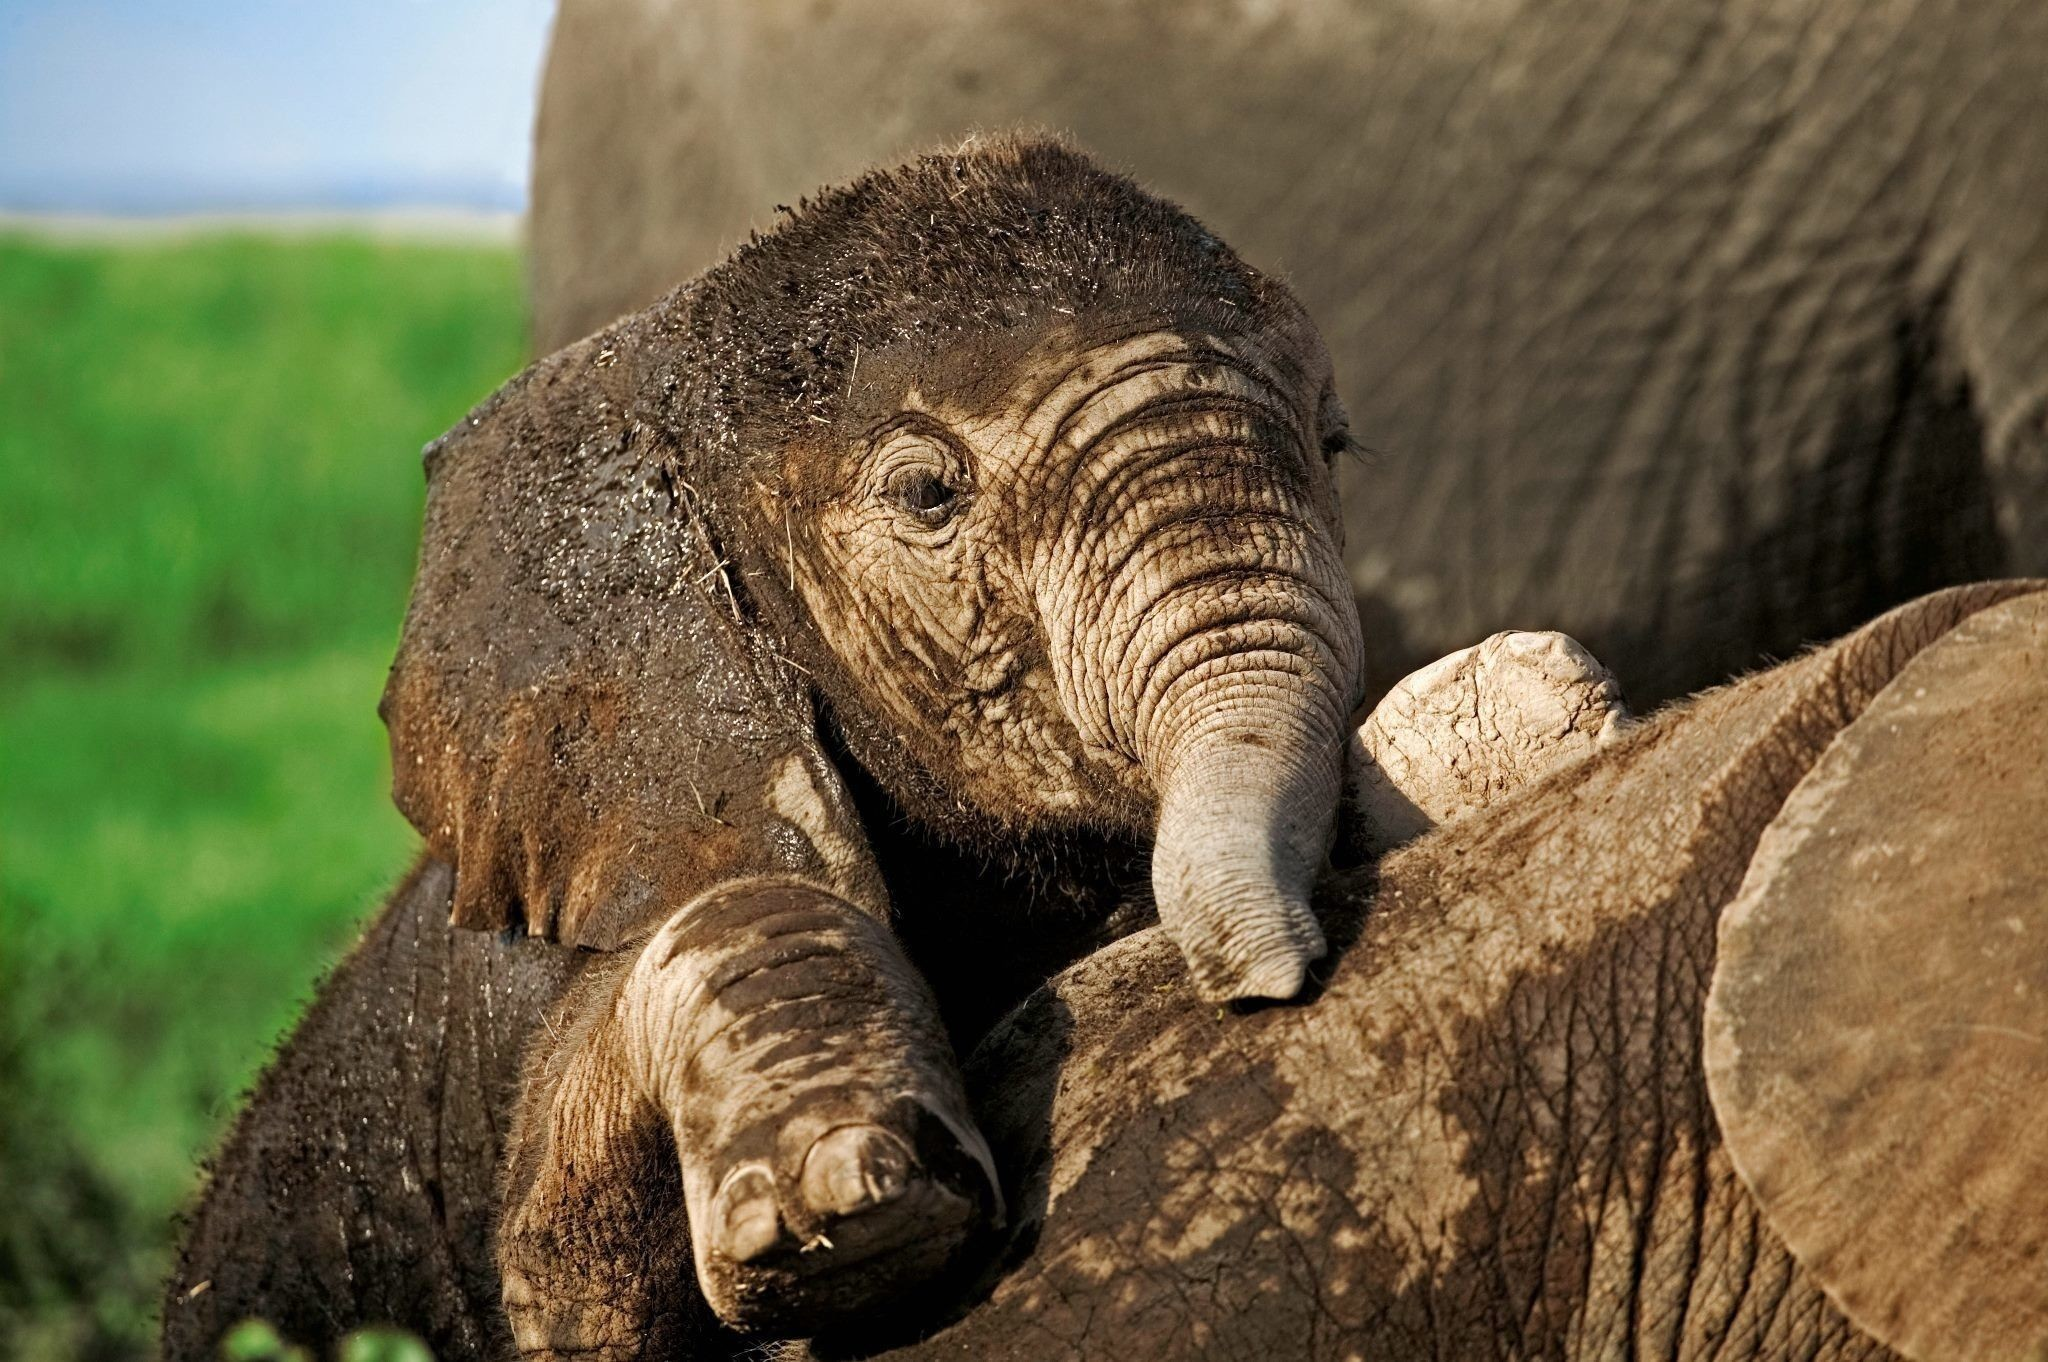 Res: 2048x1362, HD Elephants Wallpapers and Photos HD Animals Wallpapers ×